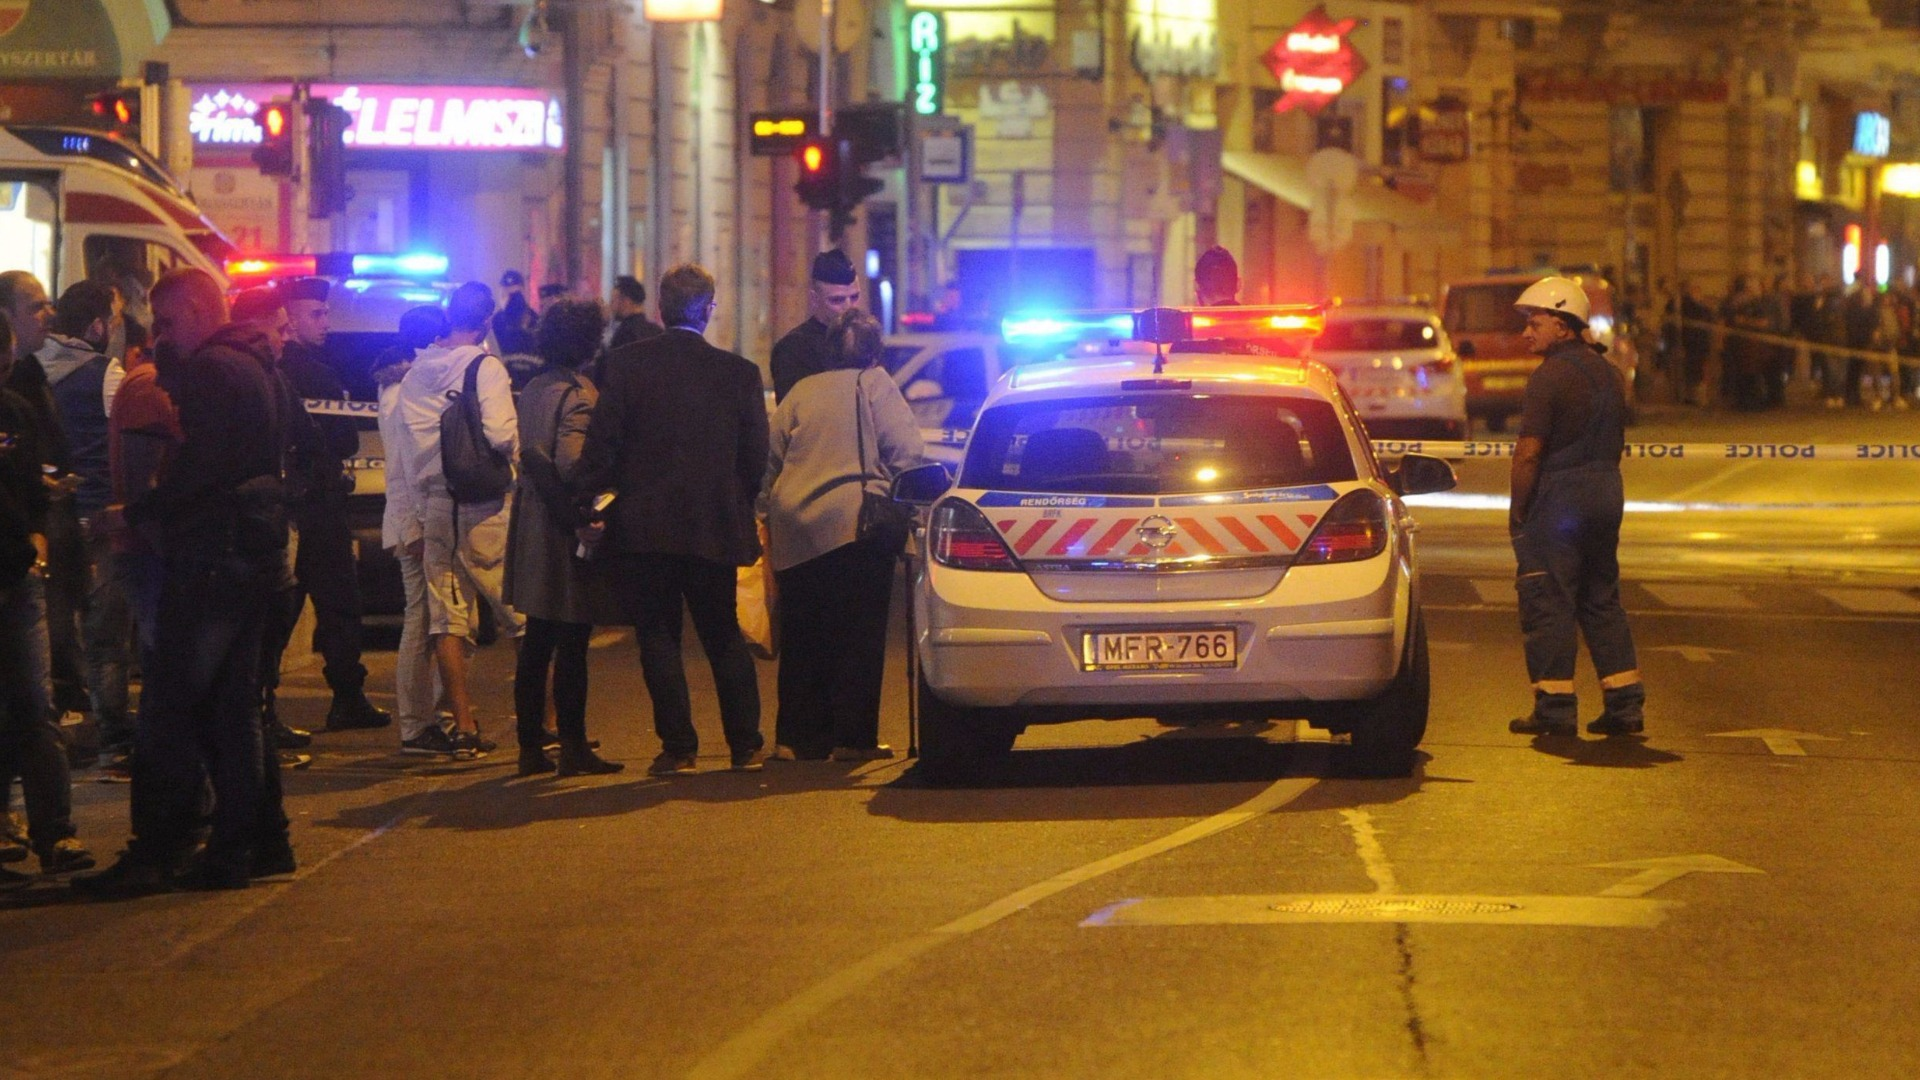 Two Hungarian police officers injured in explosion in Budapest